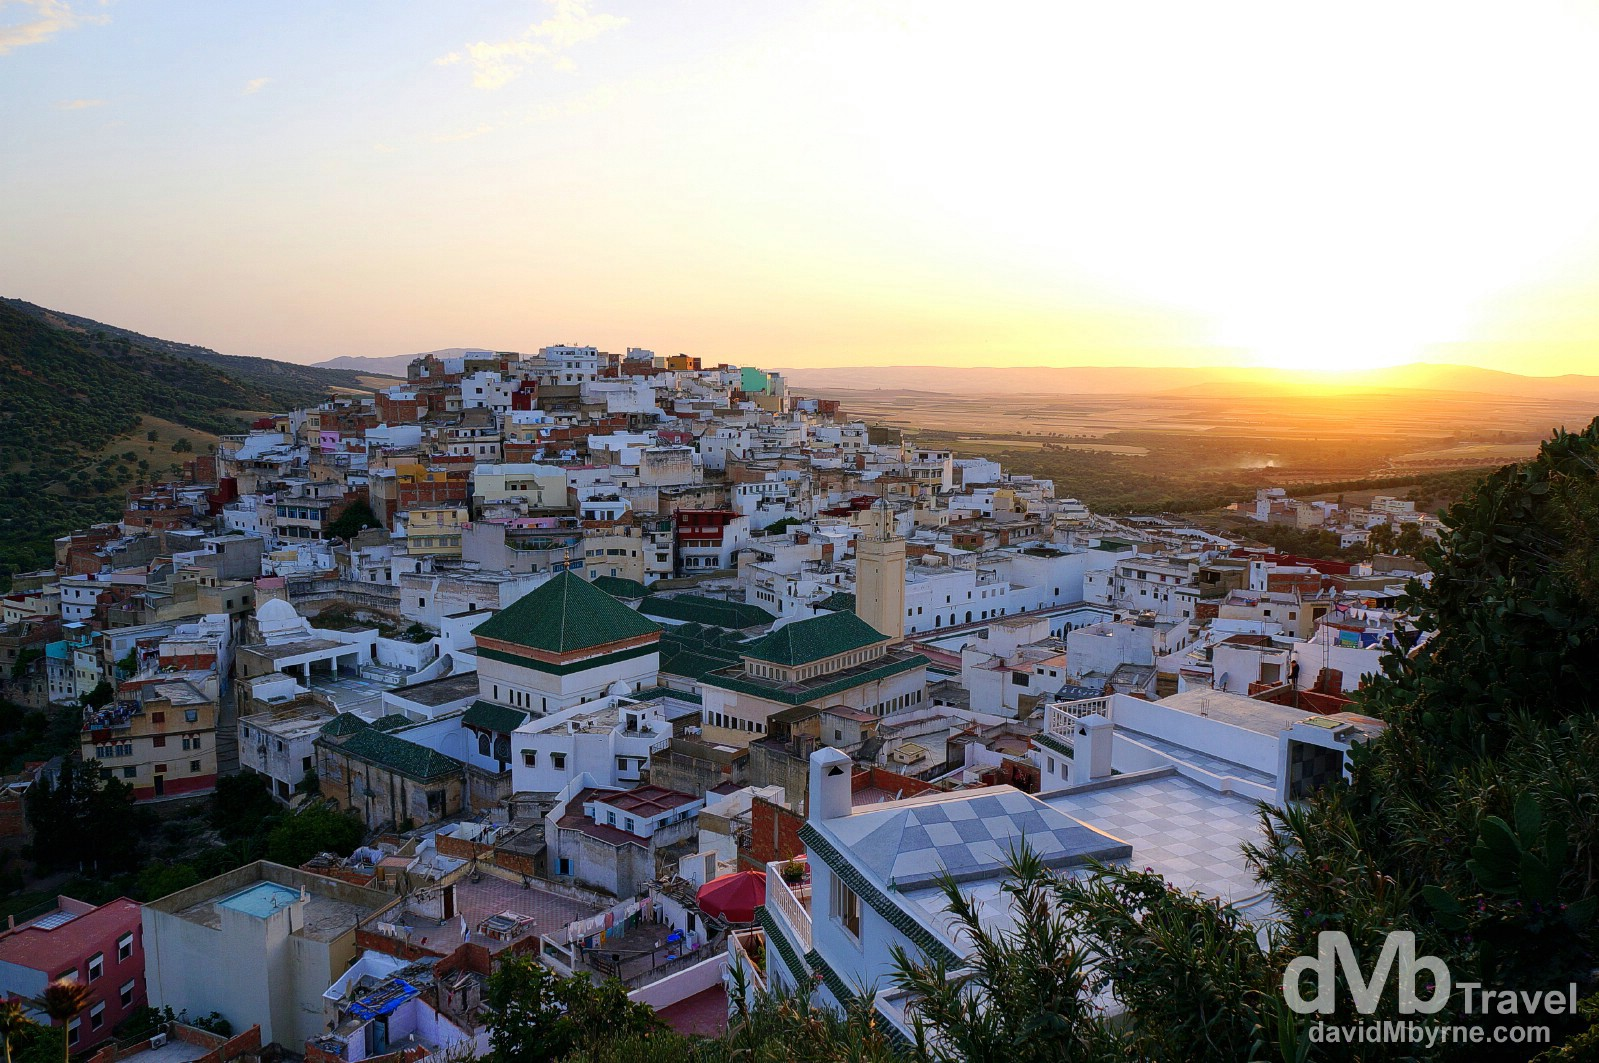 Sunset as seen from the grand terrase (grand terrace) in Moulay Idriss, Morocco. May 26th, 2014.